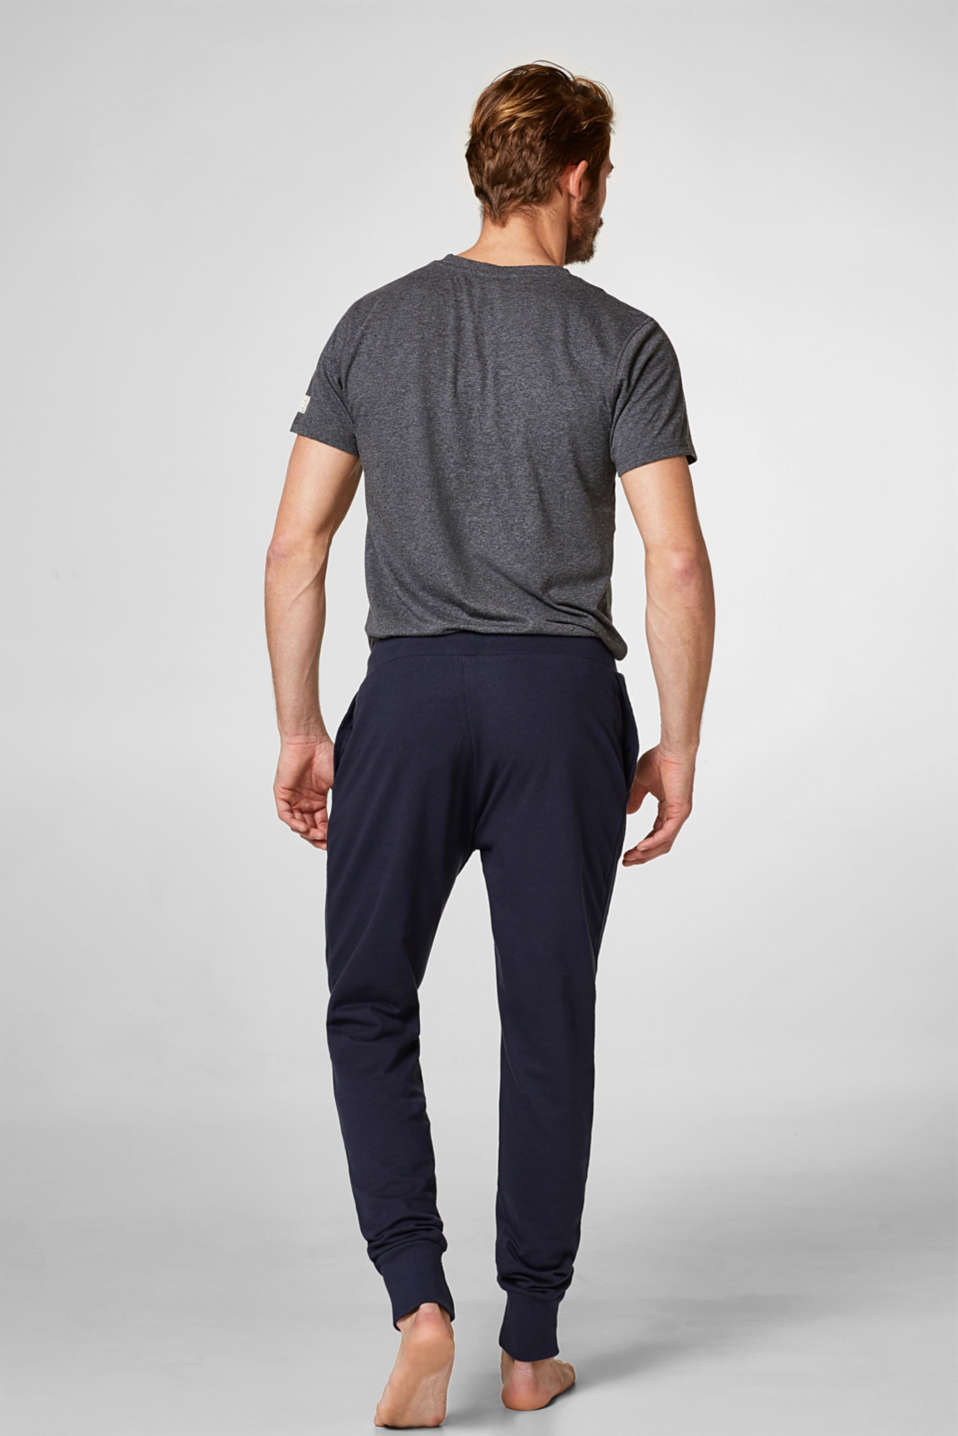 Casual jersey trousers with logo, 100% cotton